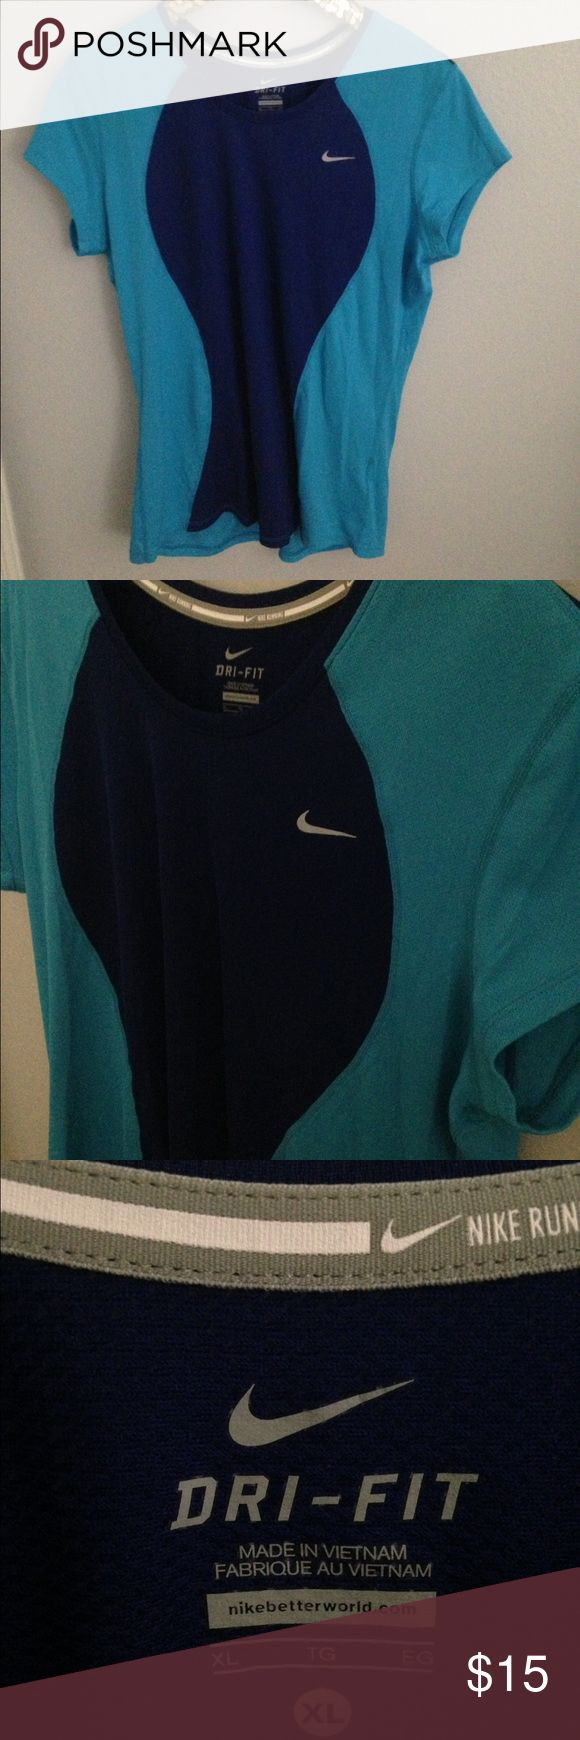 Blue dri-fit Nike top XL Great condition Nike Tops Tees - Short Sleeve